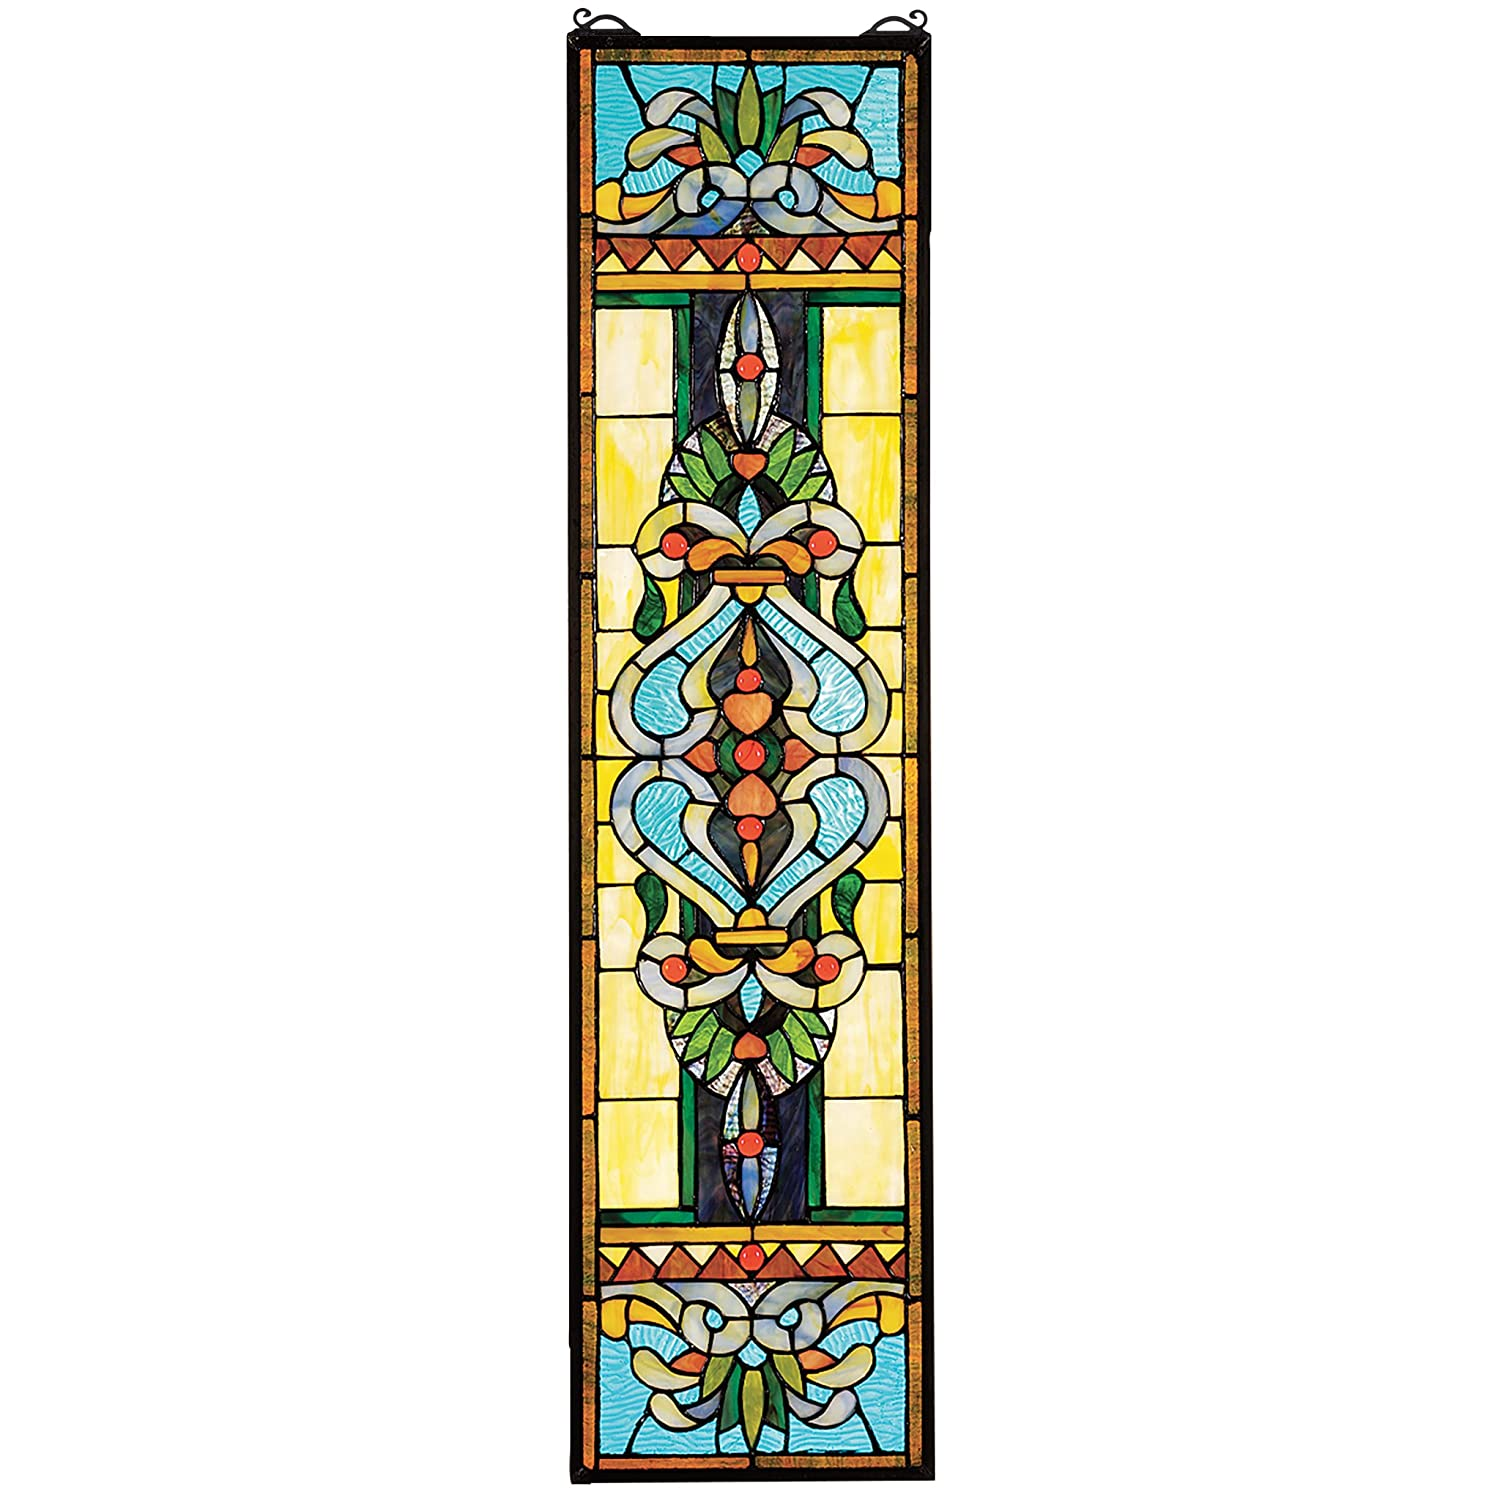 Design Toscano Blackstone Hall Stained Glass Window Hanging Panel, 89 cm, Stained Glass, Full Color HD463